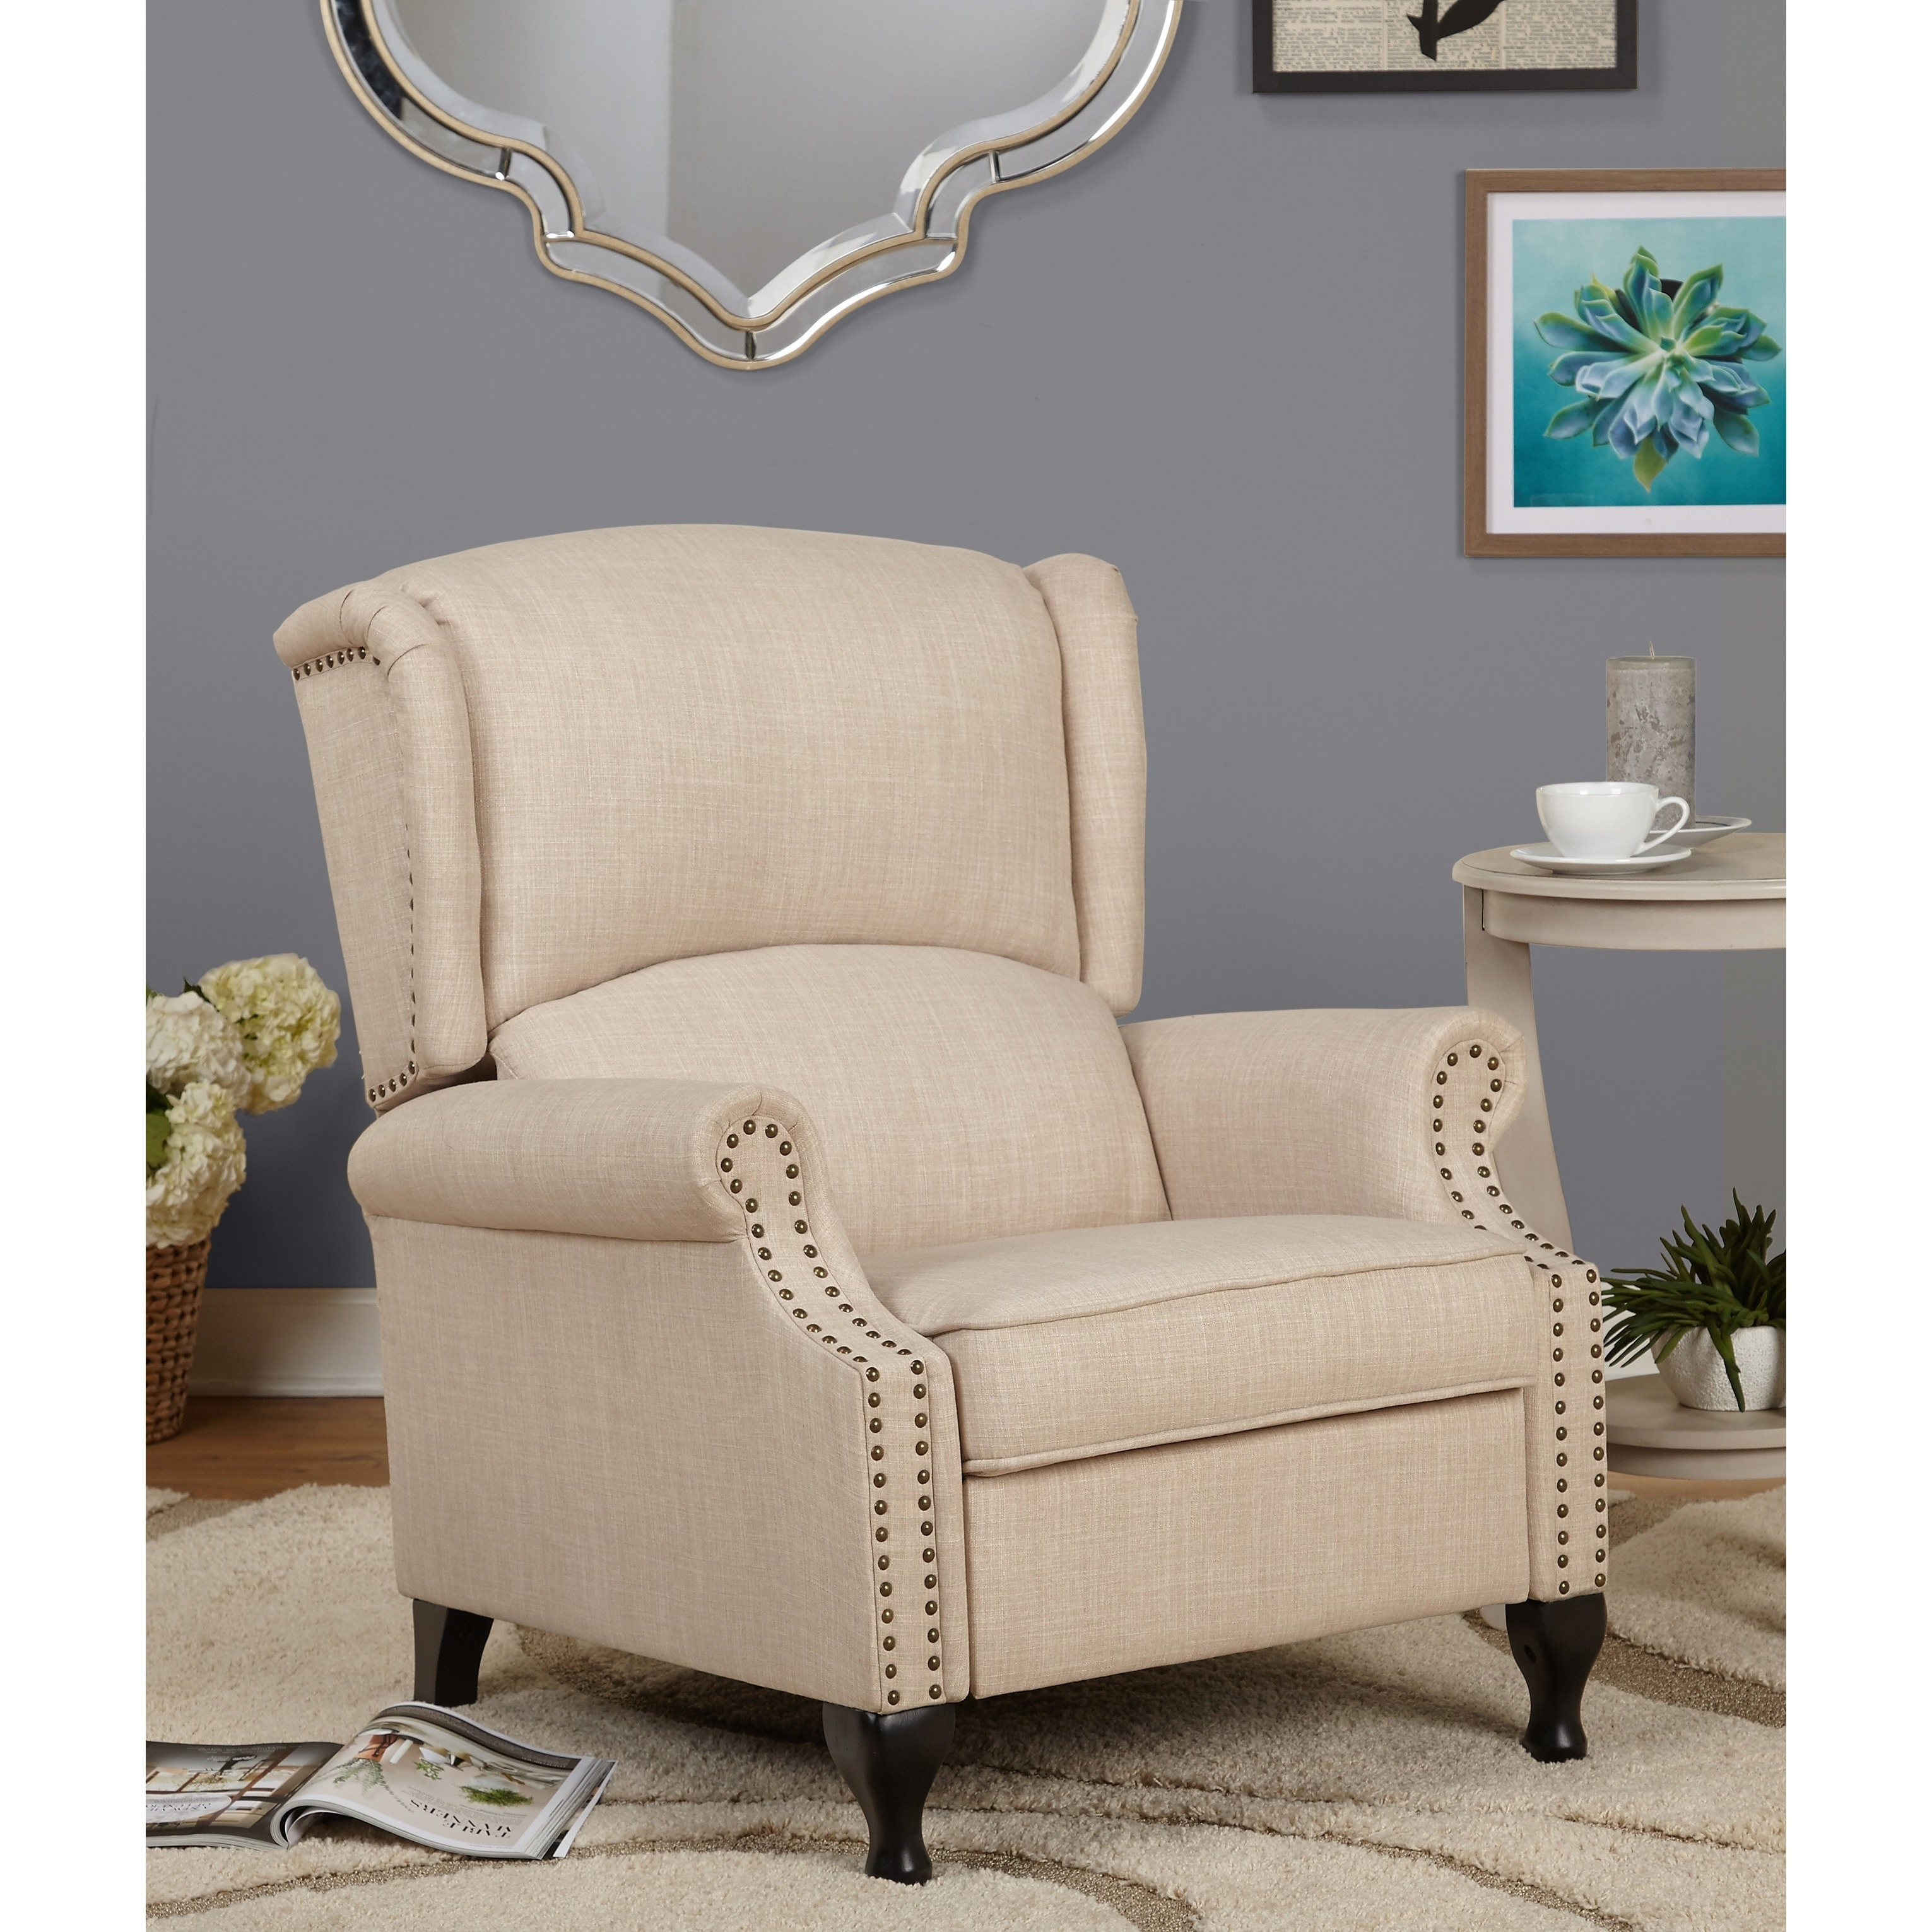 Shop Simple Living Upholstered Wing Recliner - Free Shipping Today ...